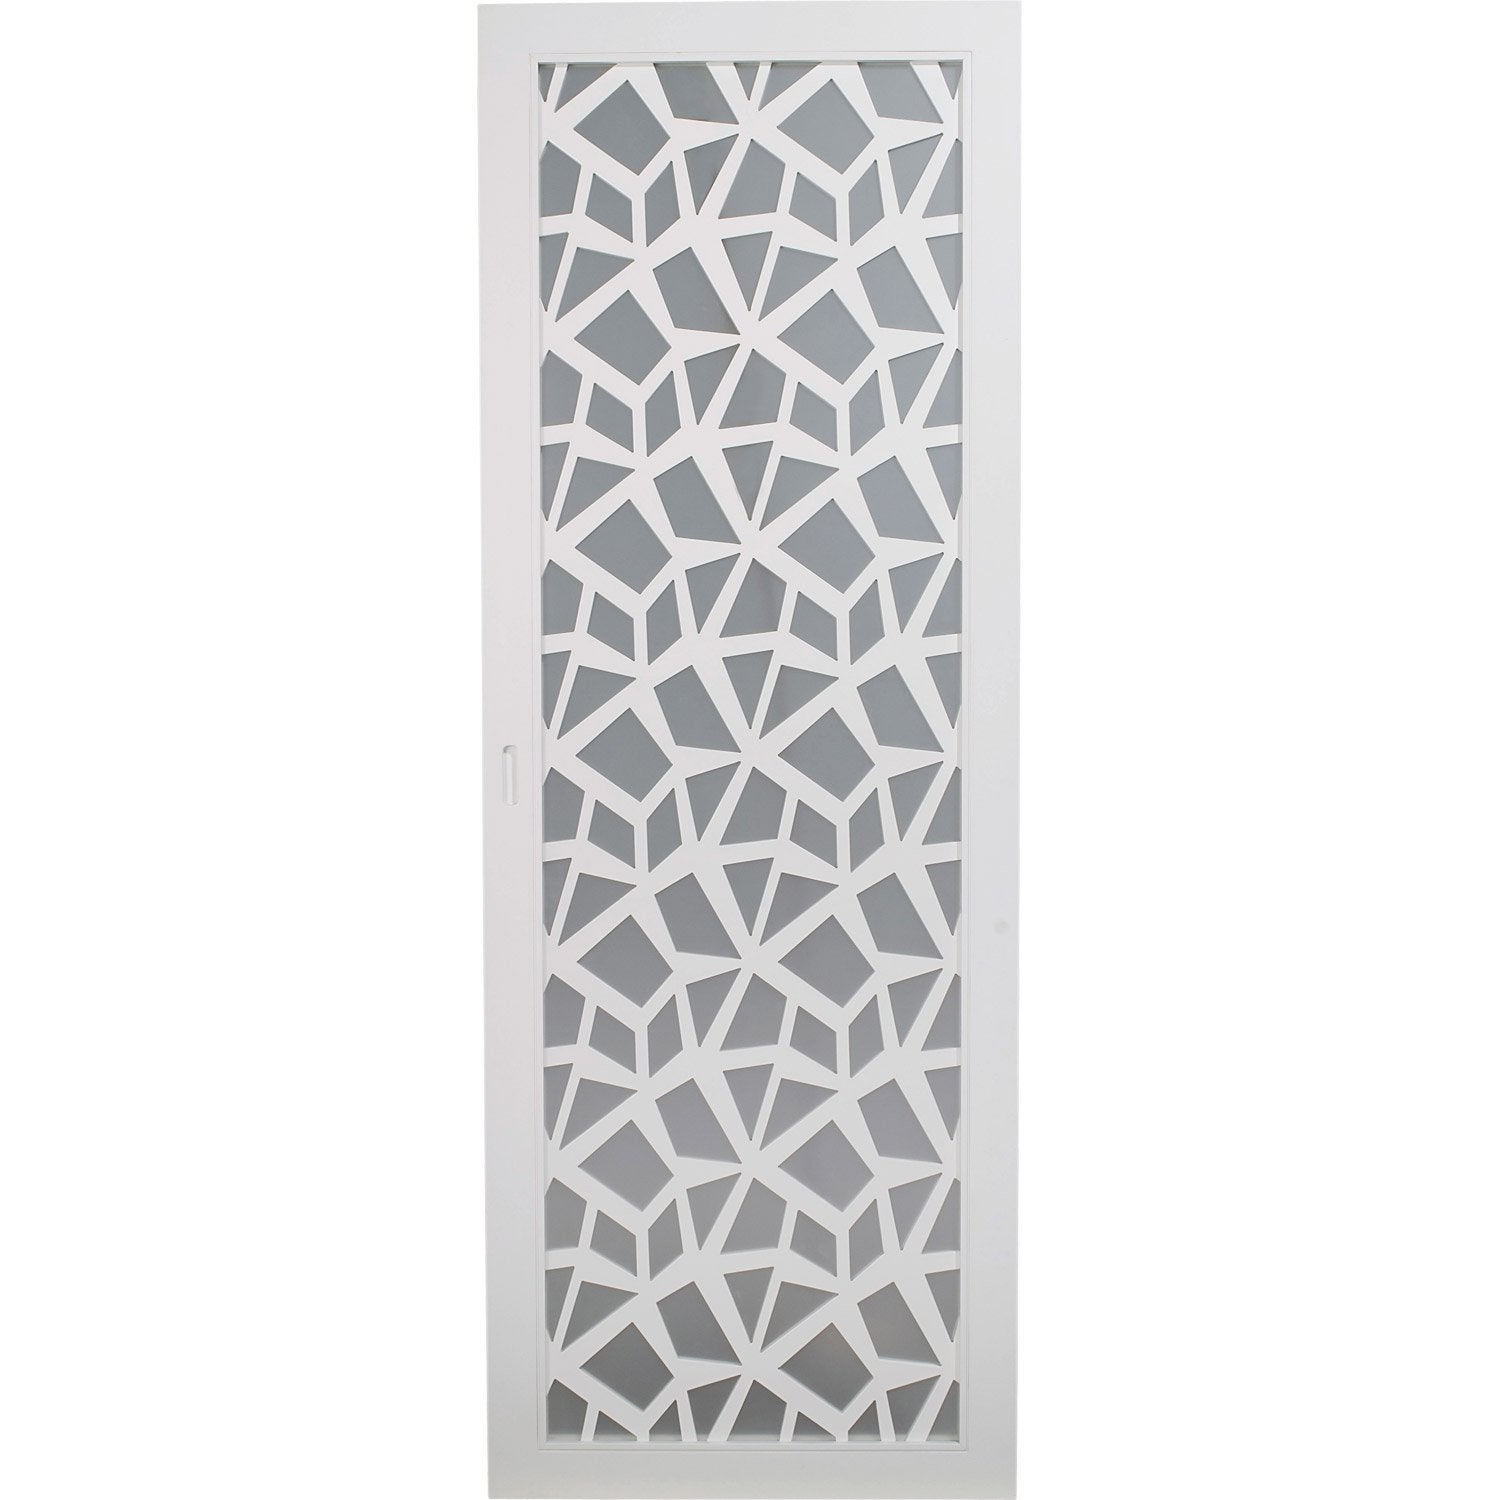 Porte coulissante plaqu blanc crash artens 204 x 73 cm for Porte coulissante 93 cm